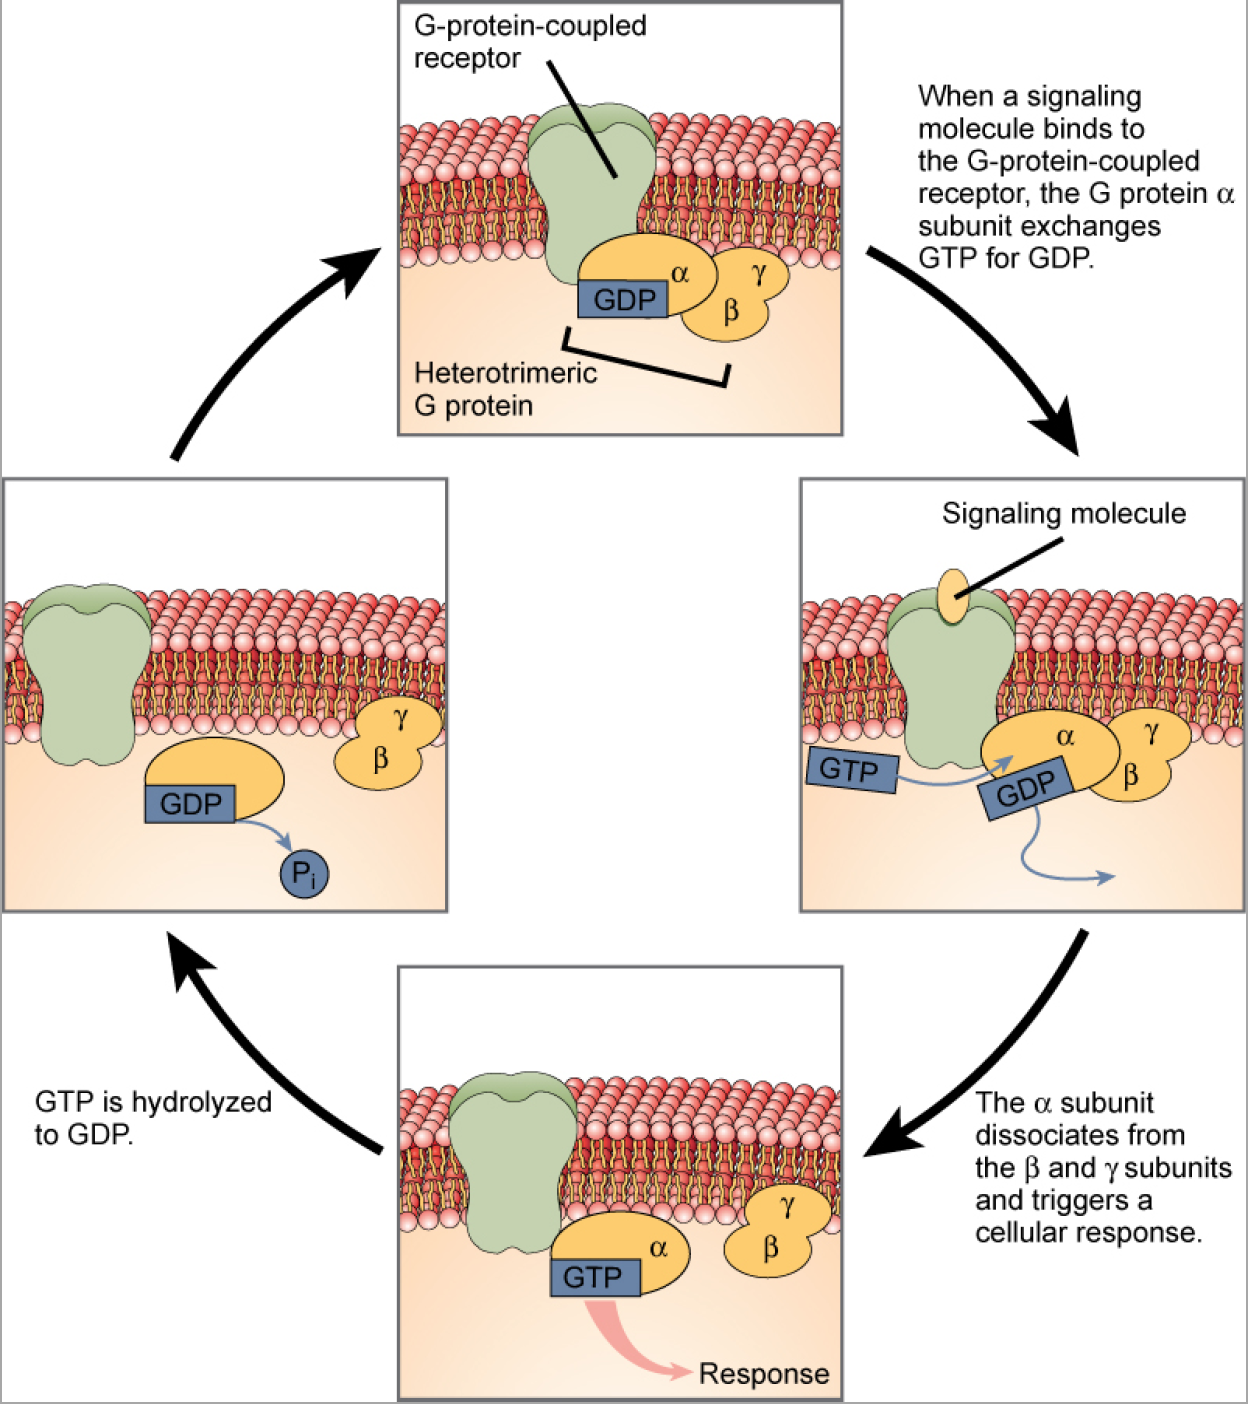 This illustration shows the activation pathway for a heterotrimeric G protein, which has three subunits: alpha beta, and gamma, all associated with the inside of the plasma membrane. When a signaling molecule binds to a G protein-coupled receptor in the plasma membrane, a G D P molecule associated with the alpha subunit is exchanged for G T P. The alpha subunit dissociates from the beta and gamma subunits and triggers a cellular response. Hydrolysis of G T P to G D P terminates the signal.